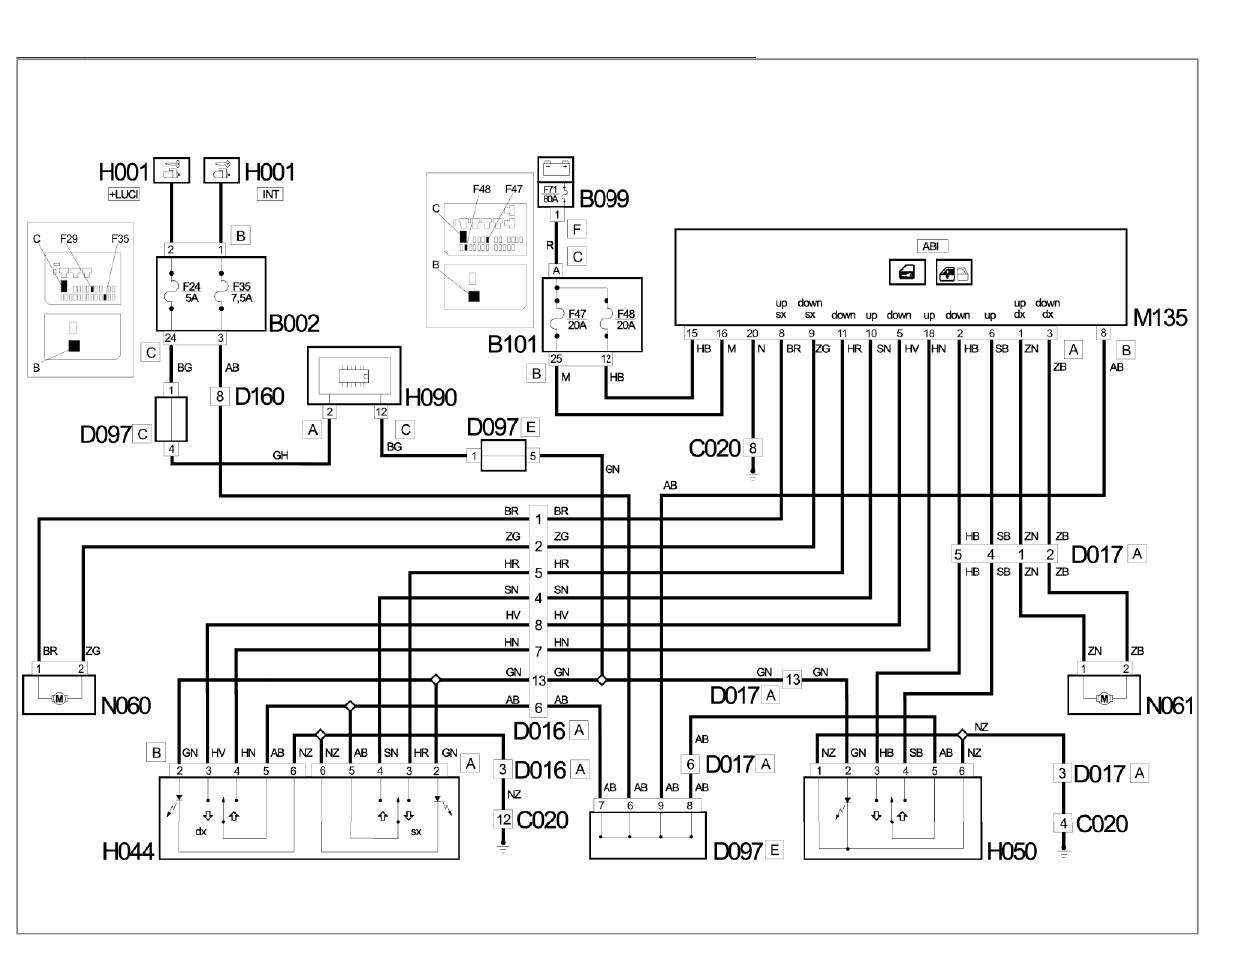 Fiat Ducato Misc Documents Electrical Diagram PDF